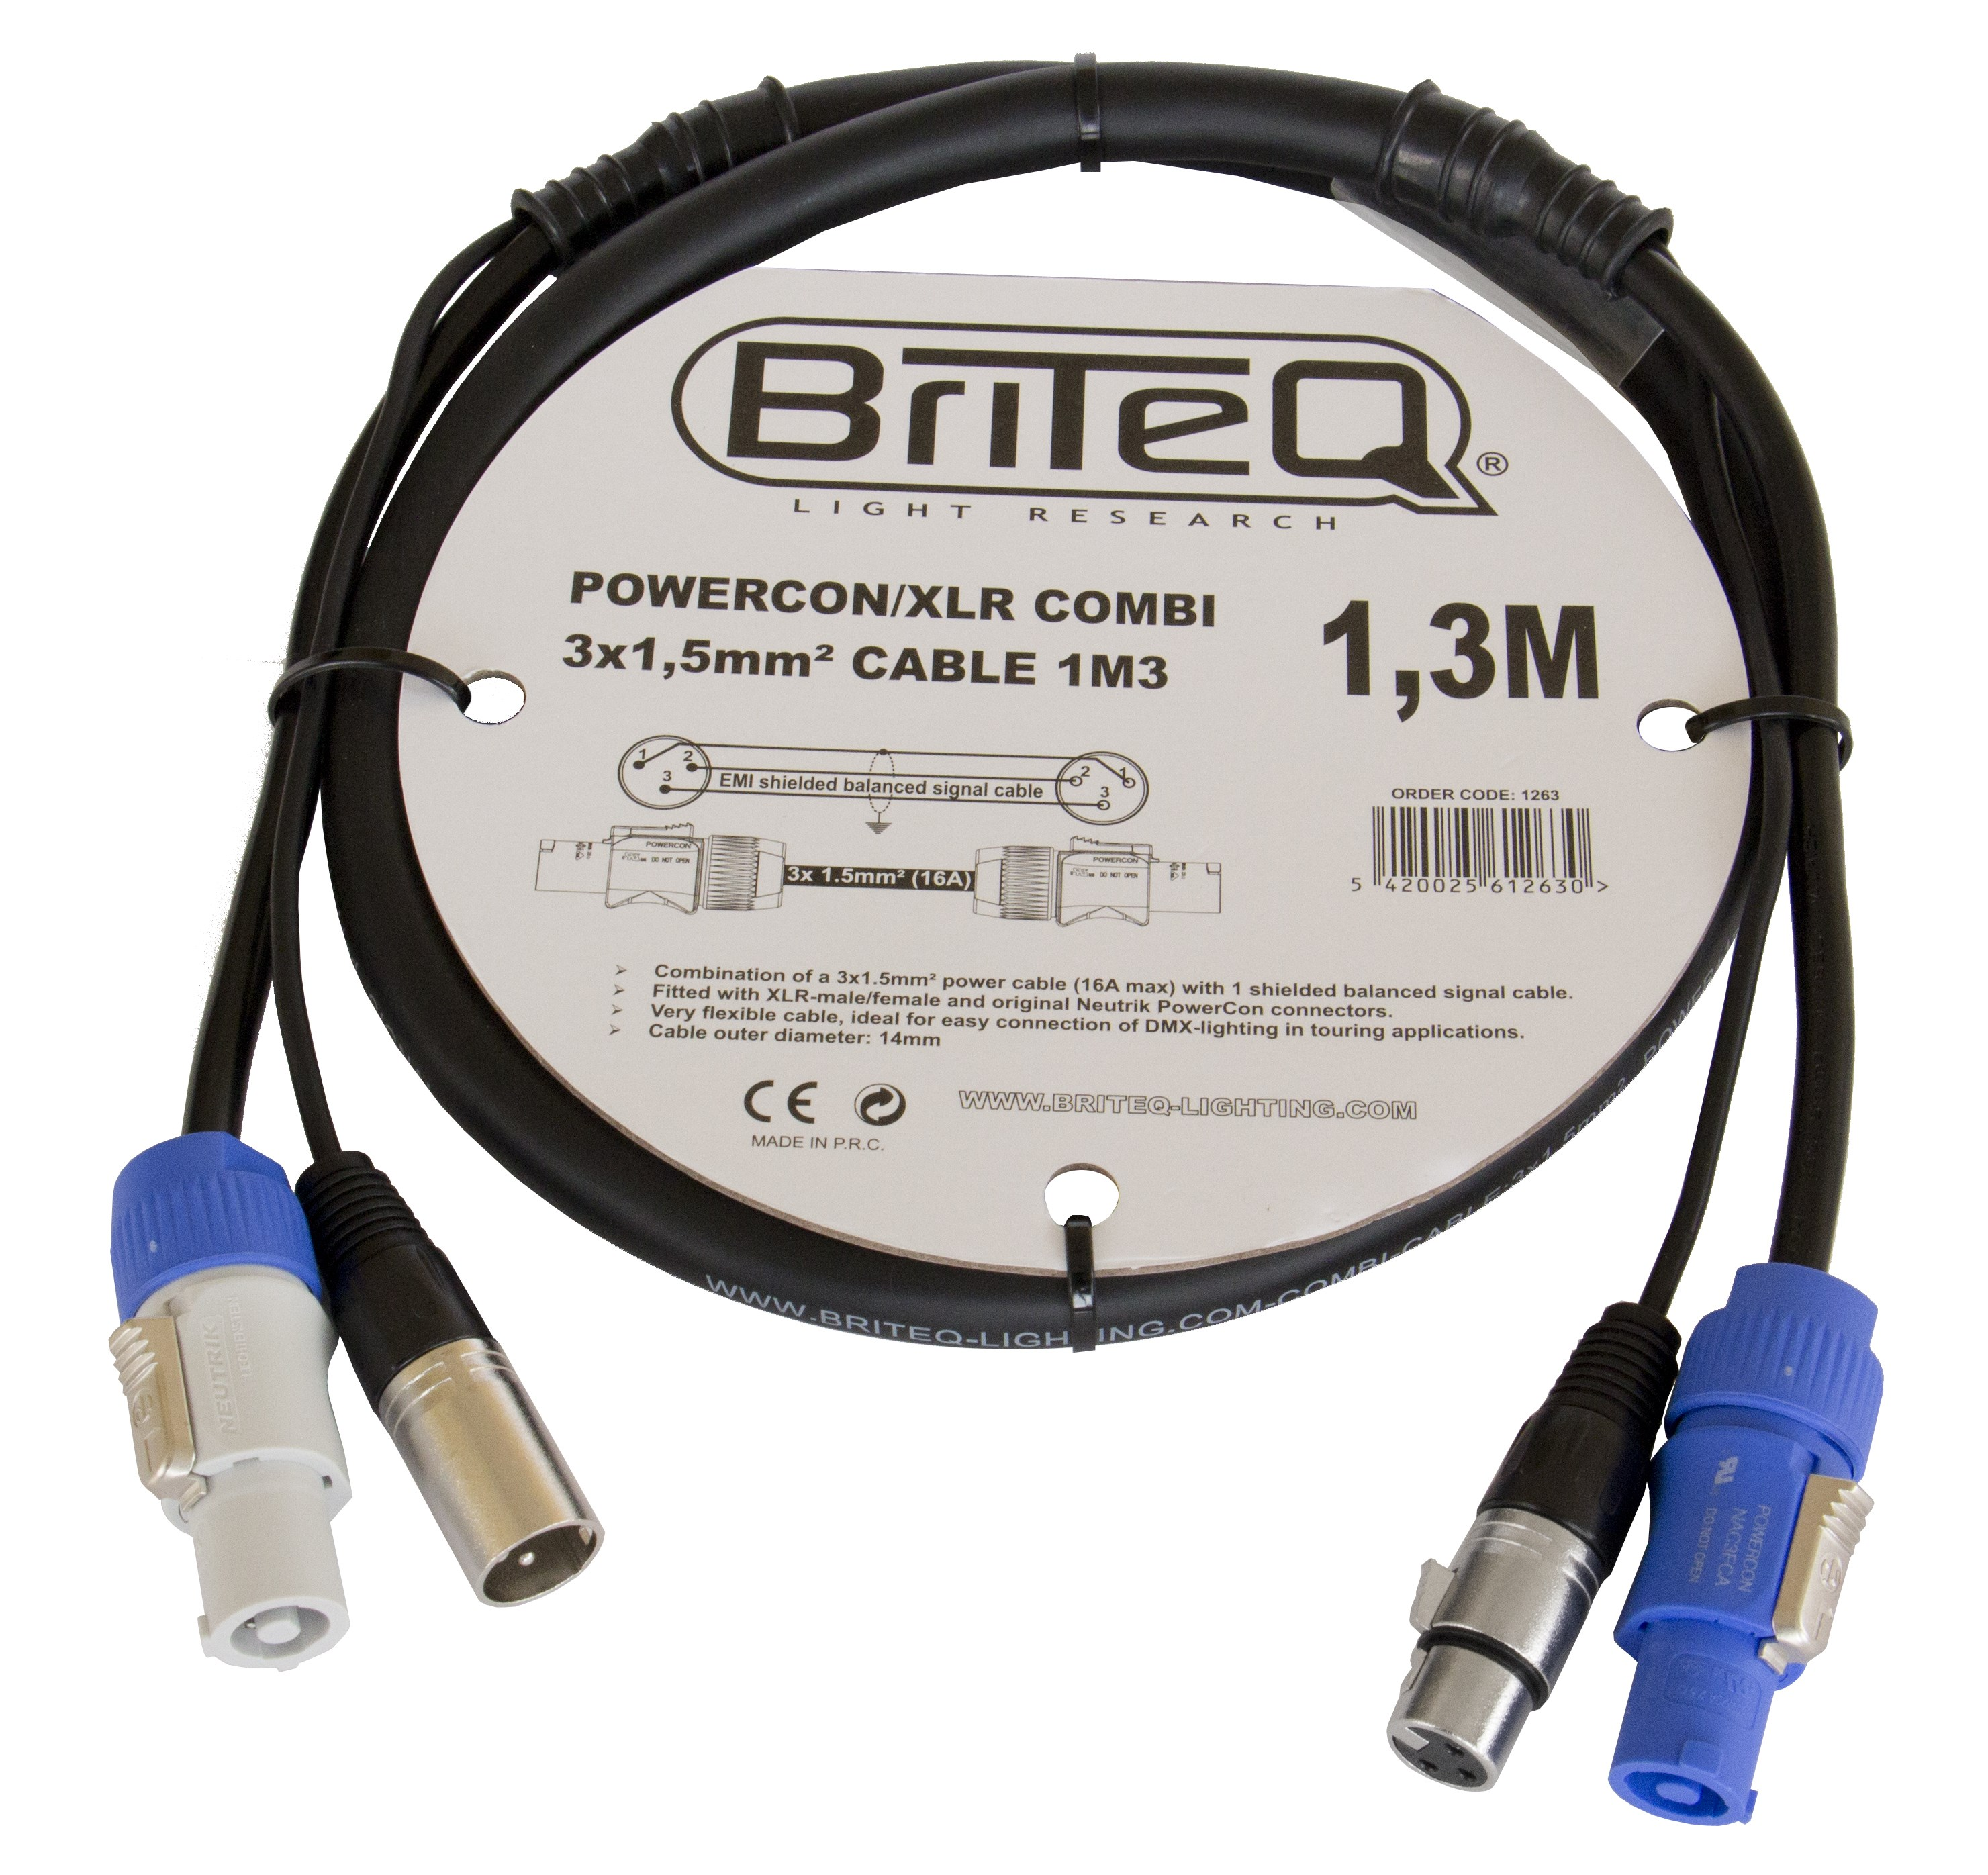 Briteq Combined Cables Powercon Xlr Combi 3x15mm Cable 1m3 Electrical Wiring Made Easy